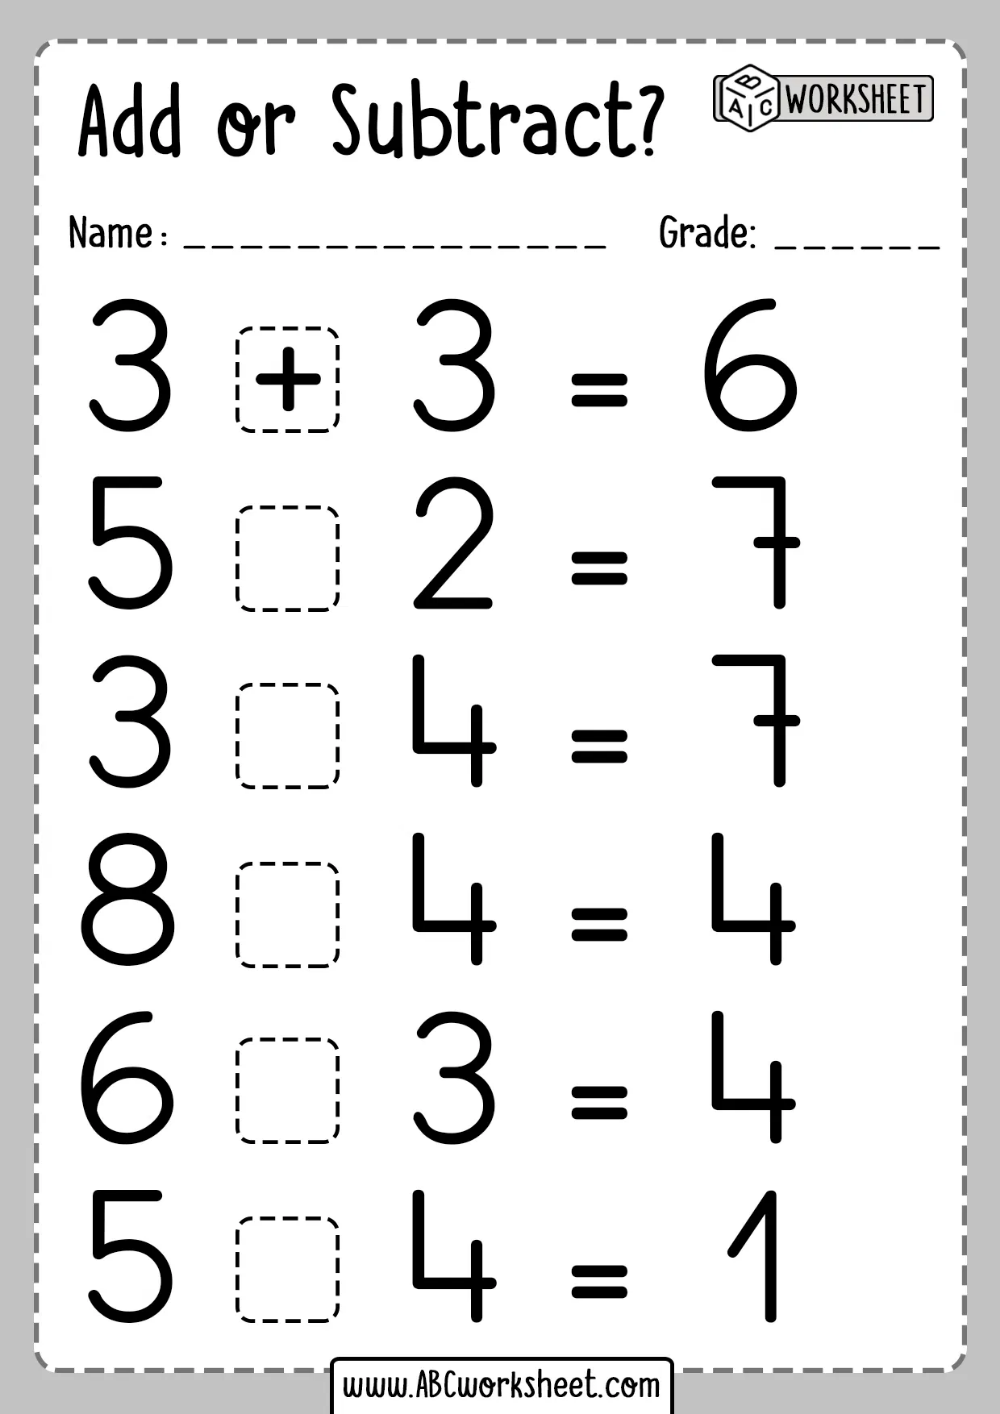 hight resolution of Single Digit Addition and Subtraction Worksheet   Addition and subtraction  worksheets